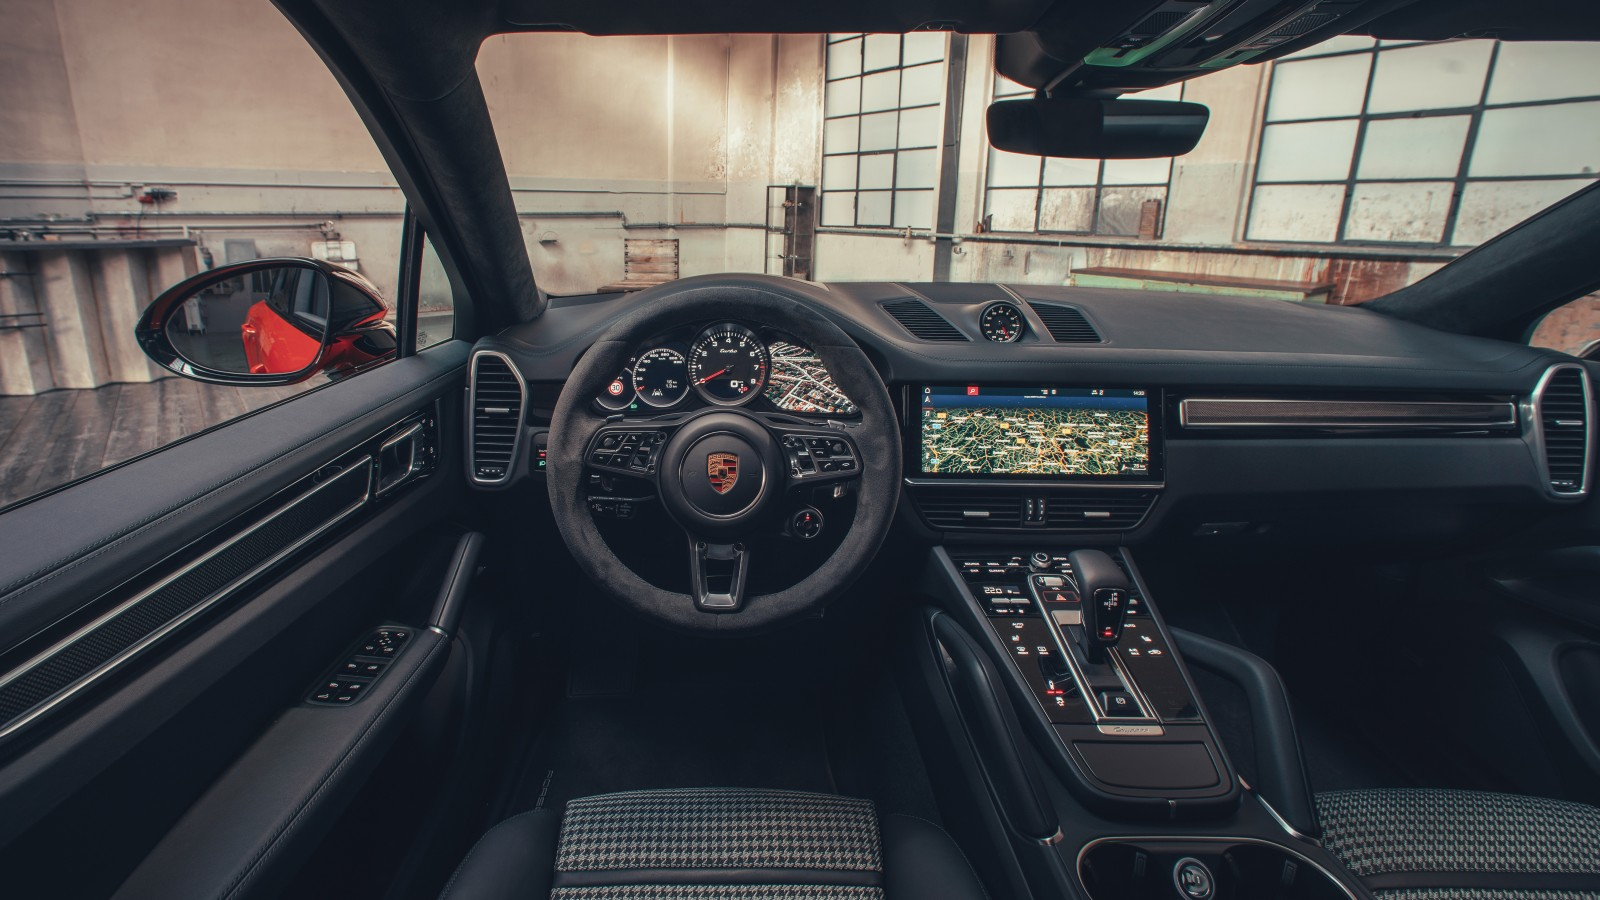 Porsche Cayenne Turbo Coupe 2019 4K Interior Wallpaper ...